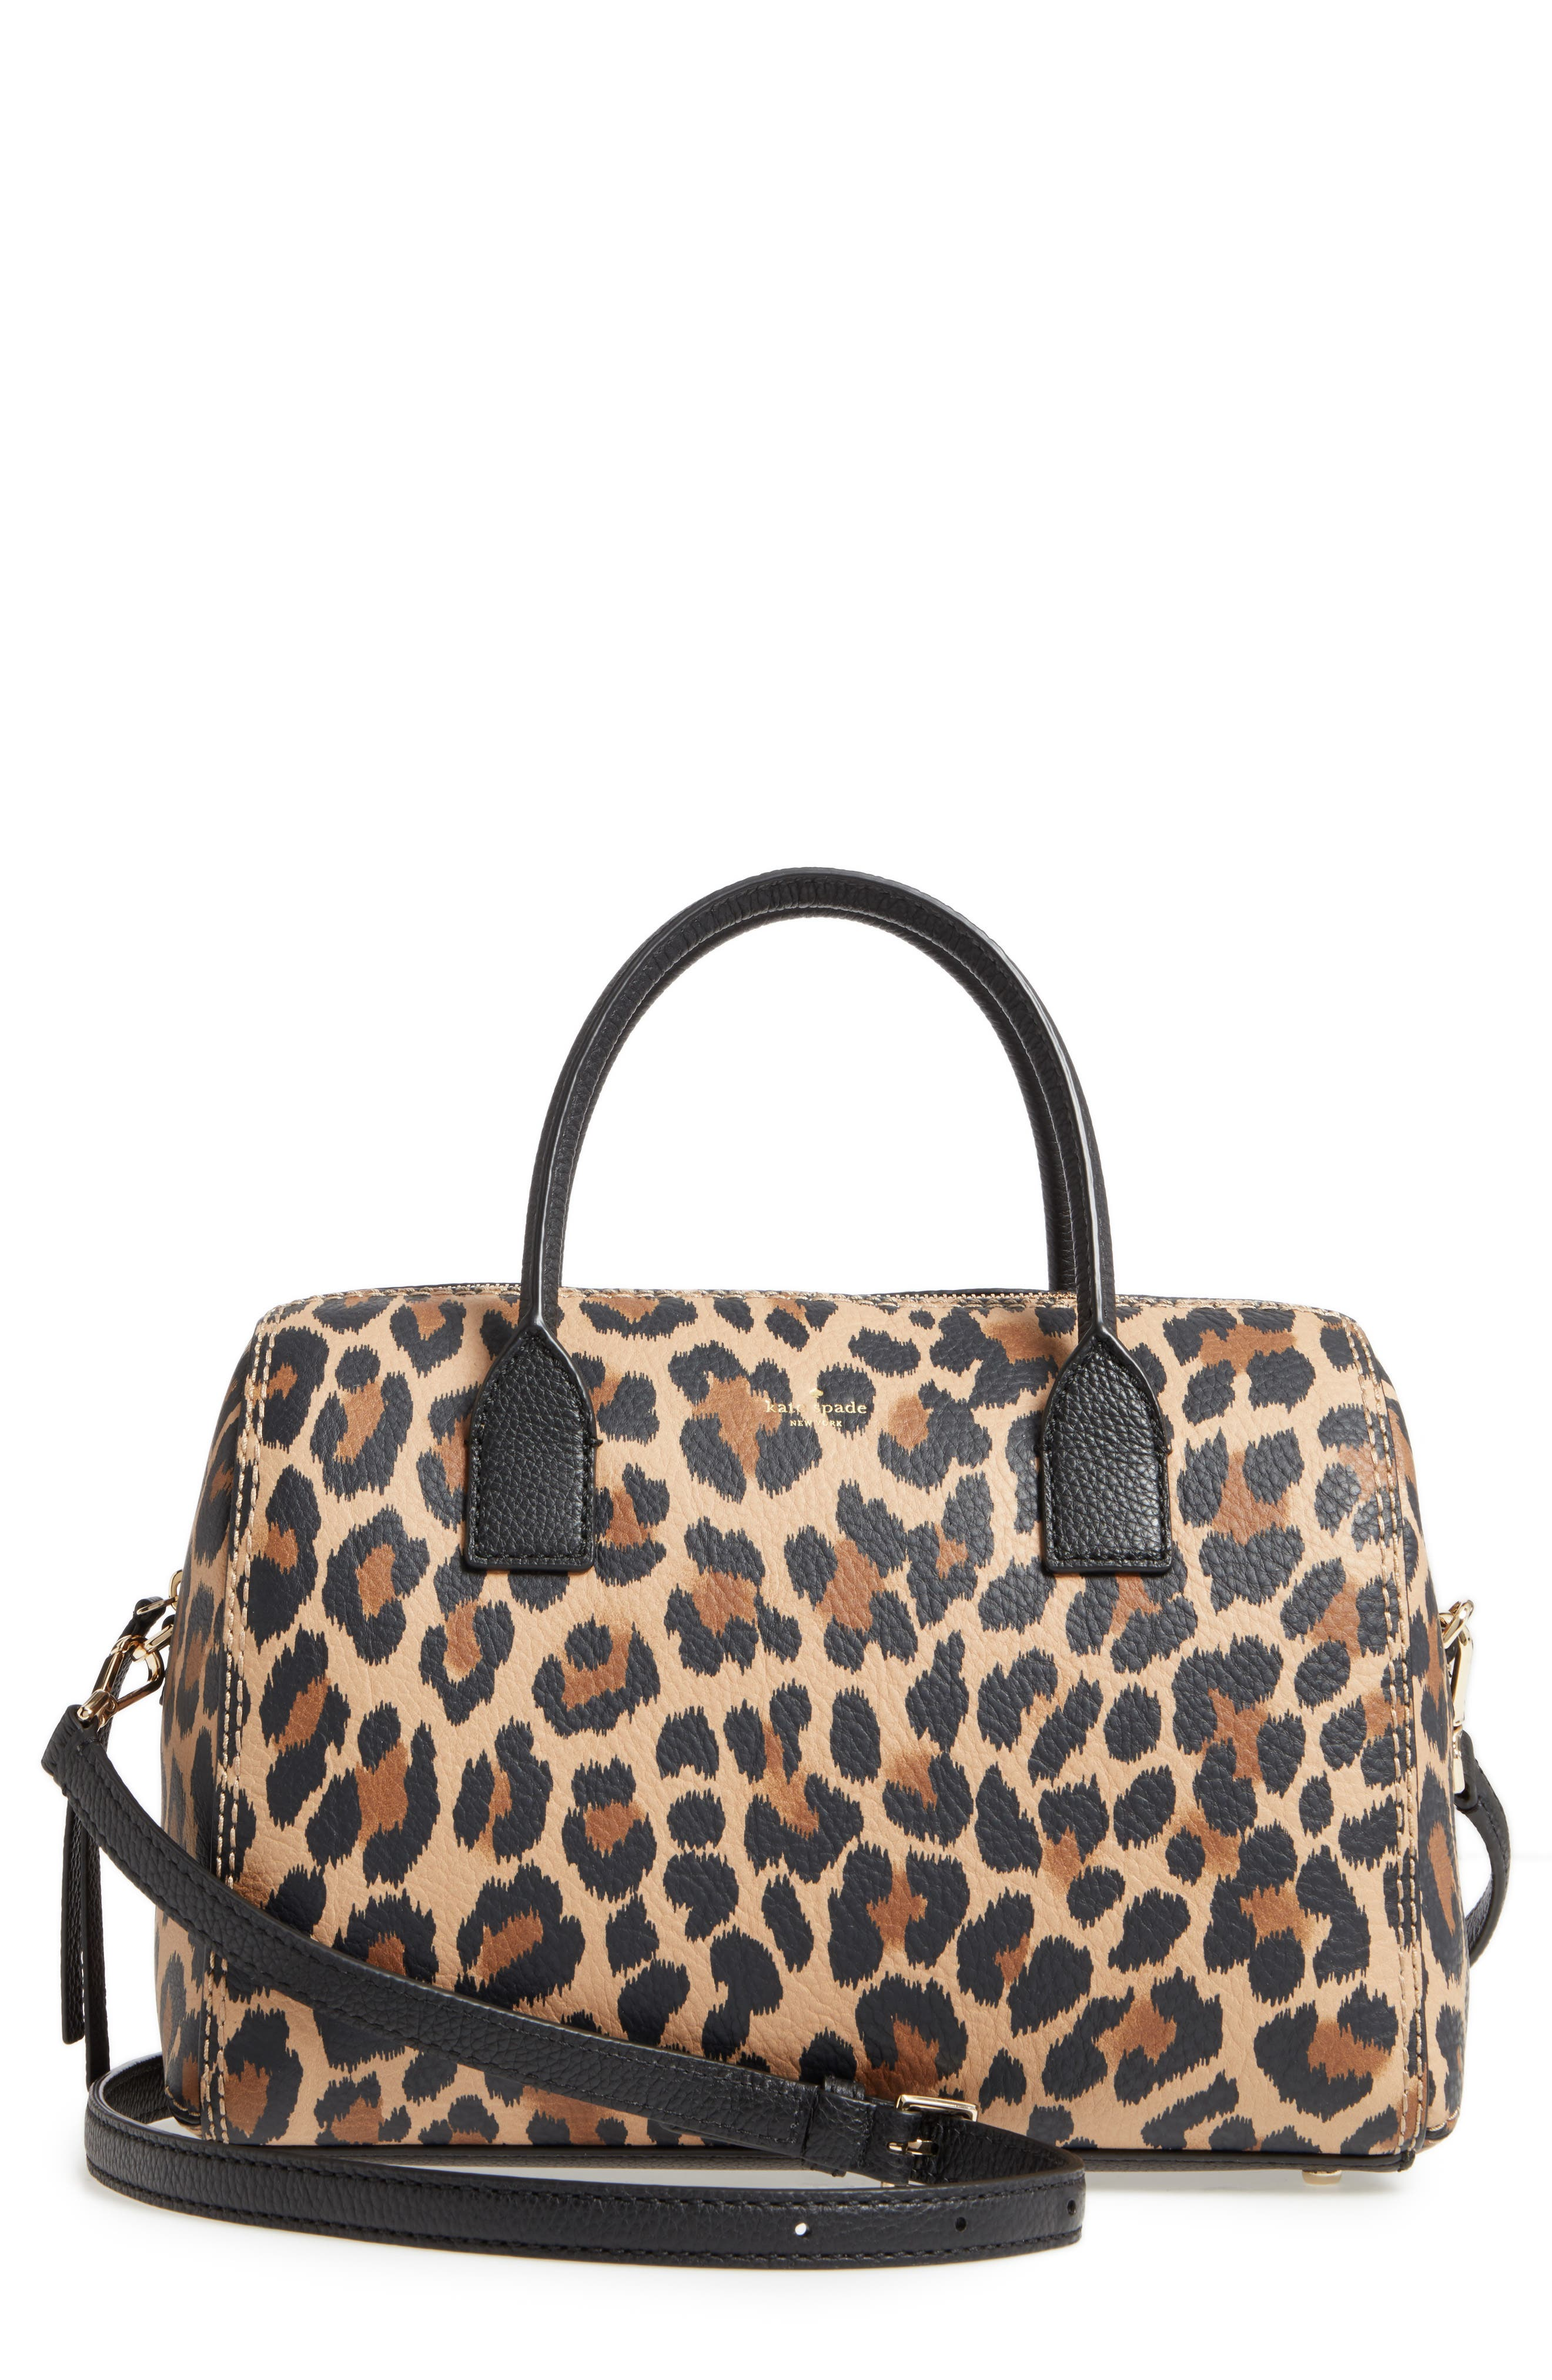 kate spade new york dunne lane mega lake printed leather satchel